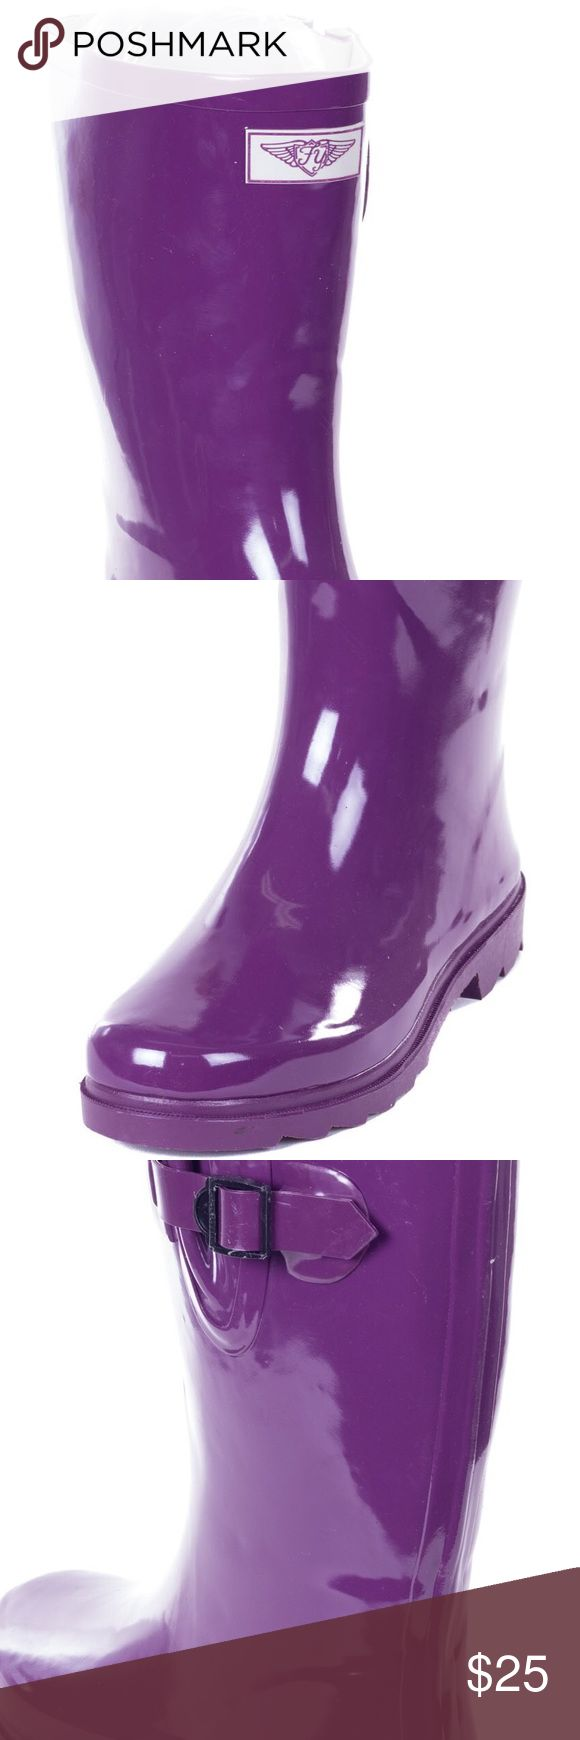 Luxury Rain Boots  Shoe Lass  Shoes For Feet